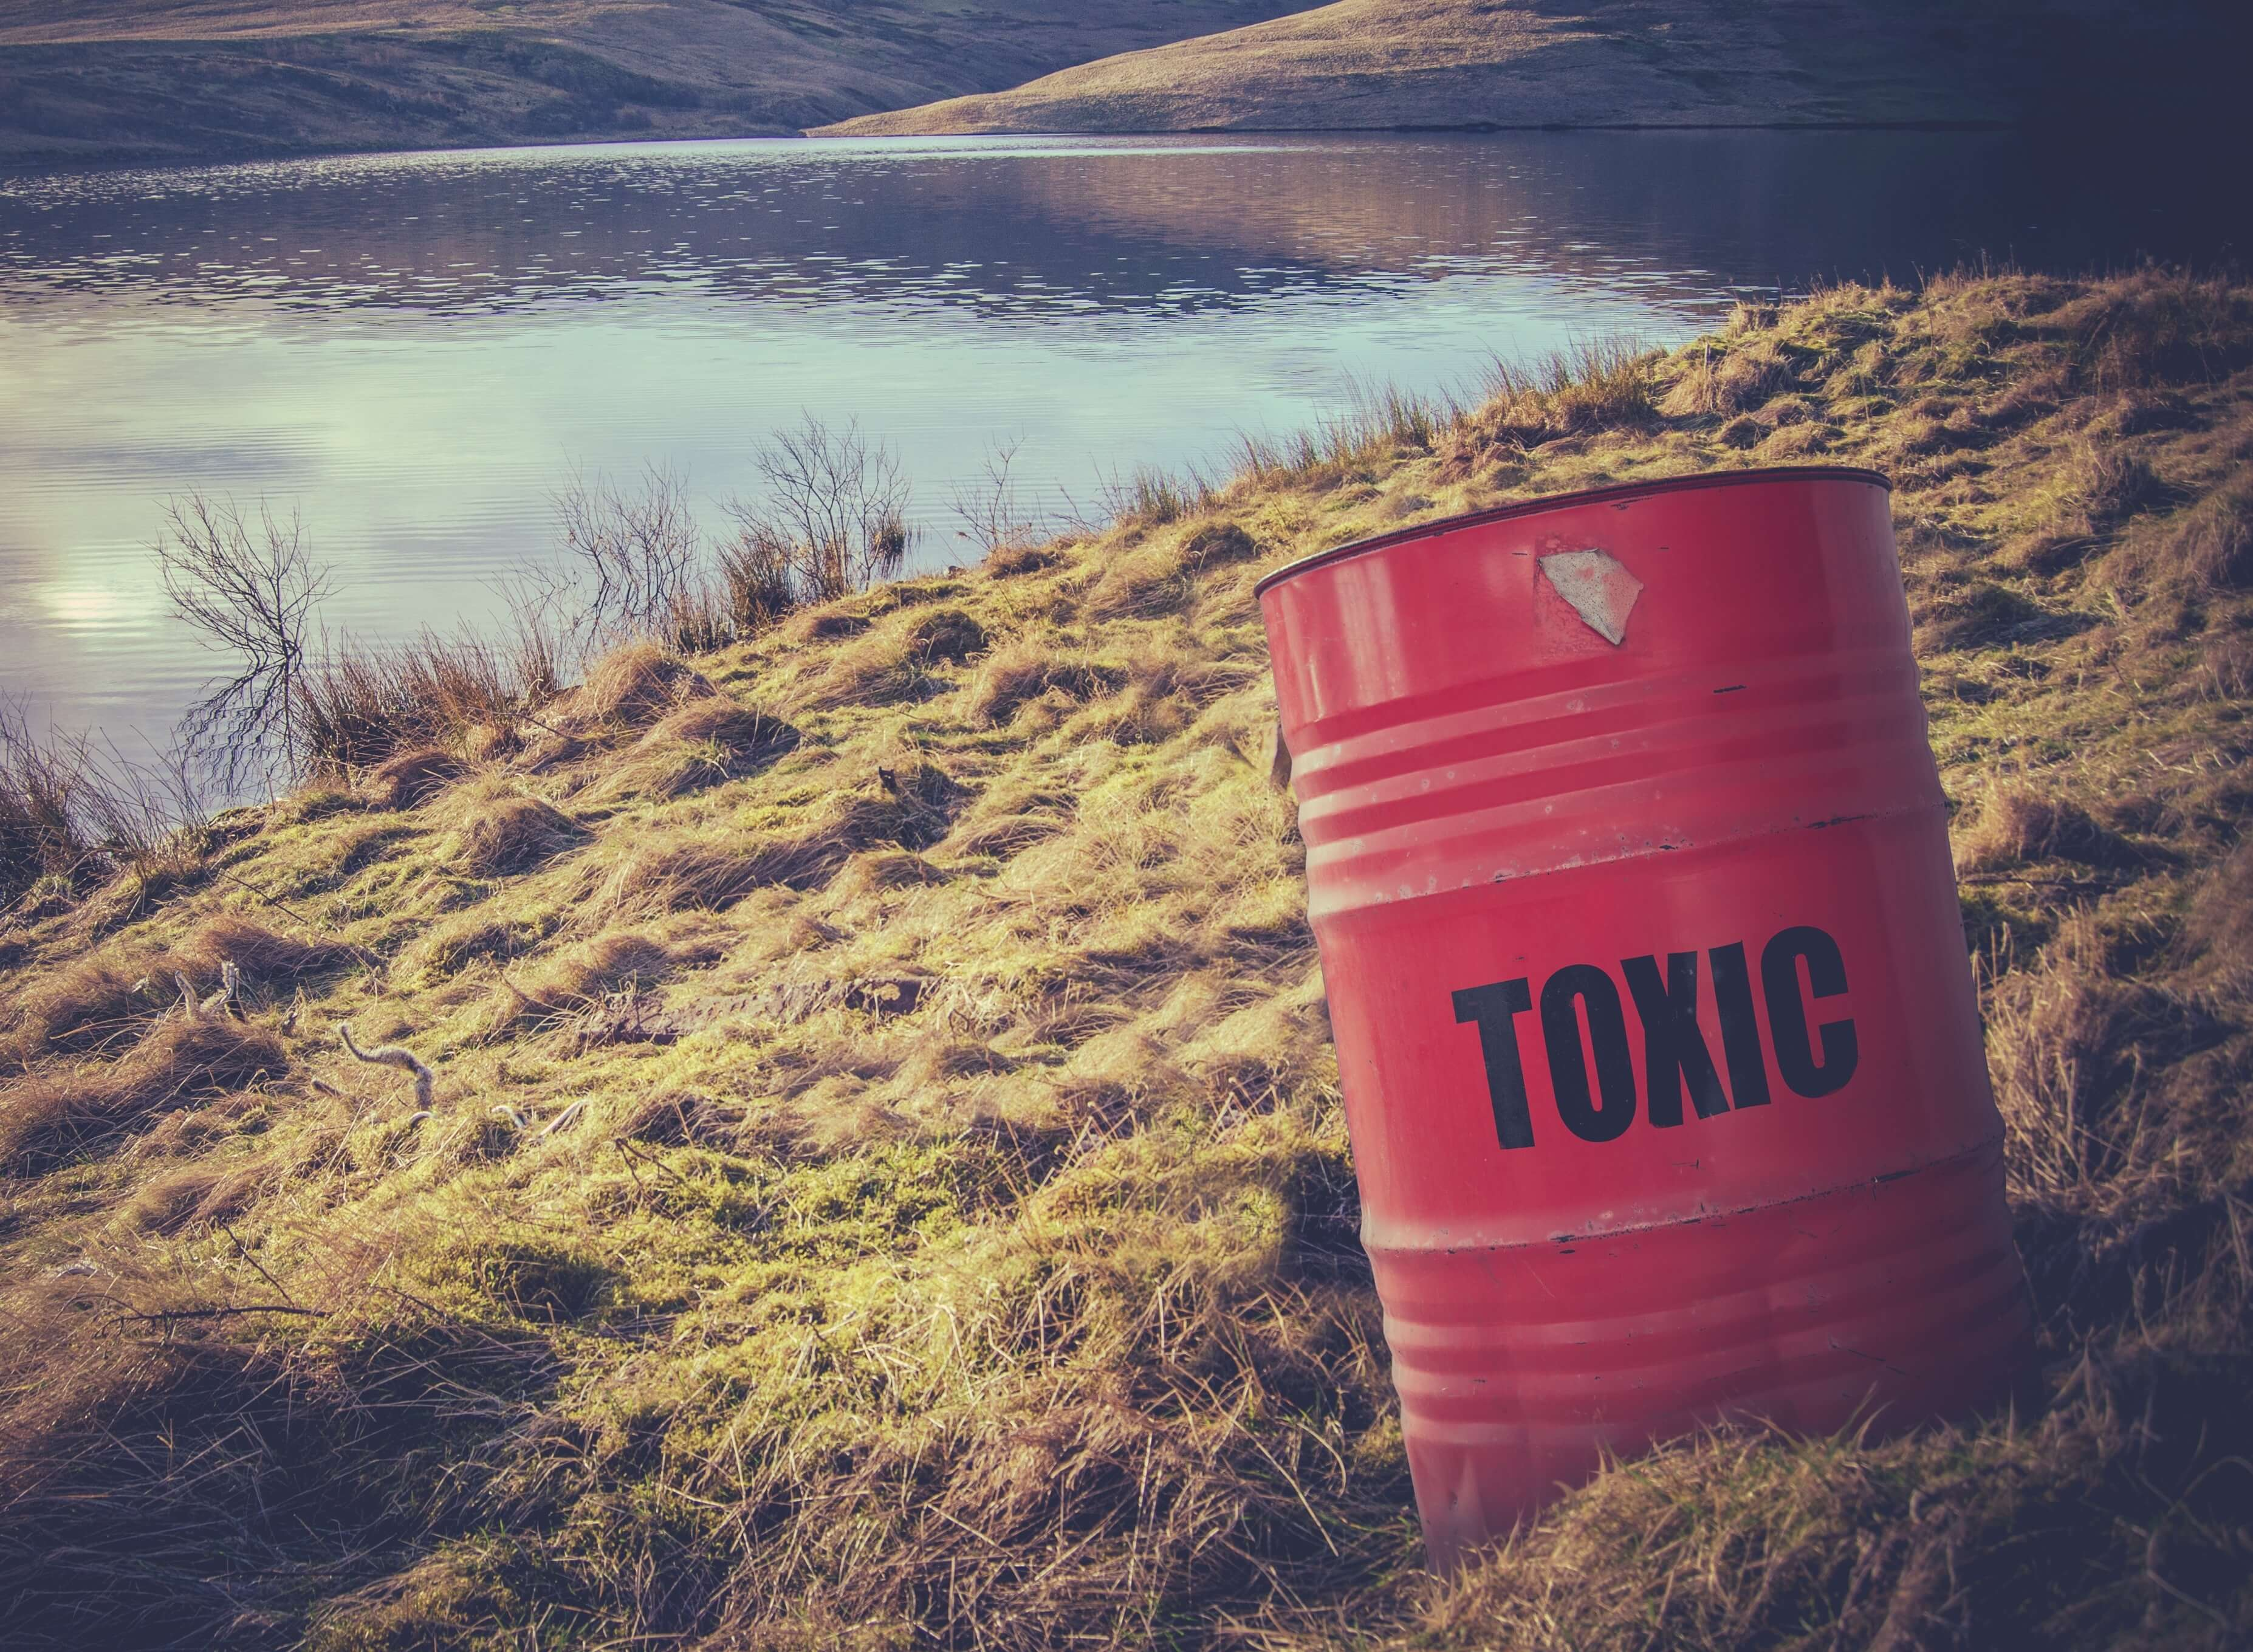 What are toxic substances?